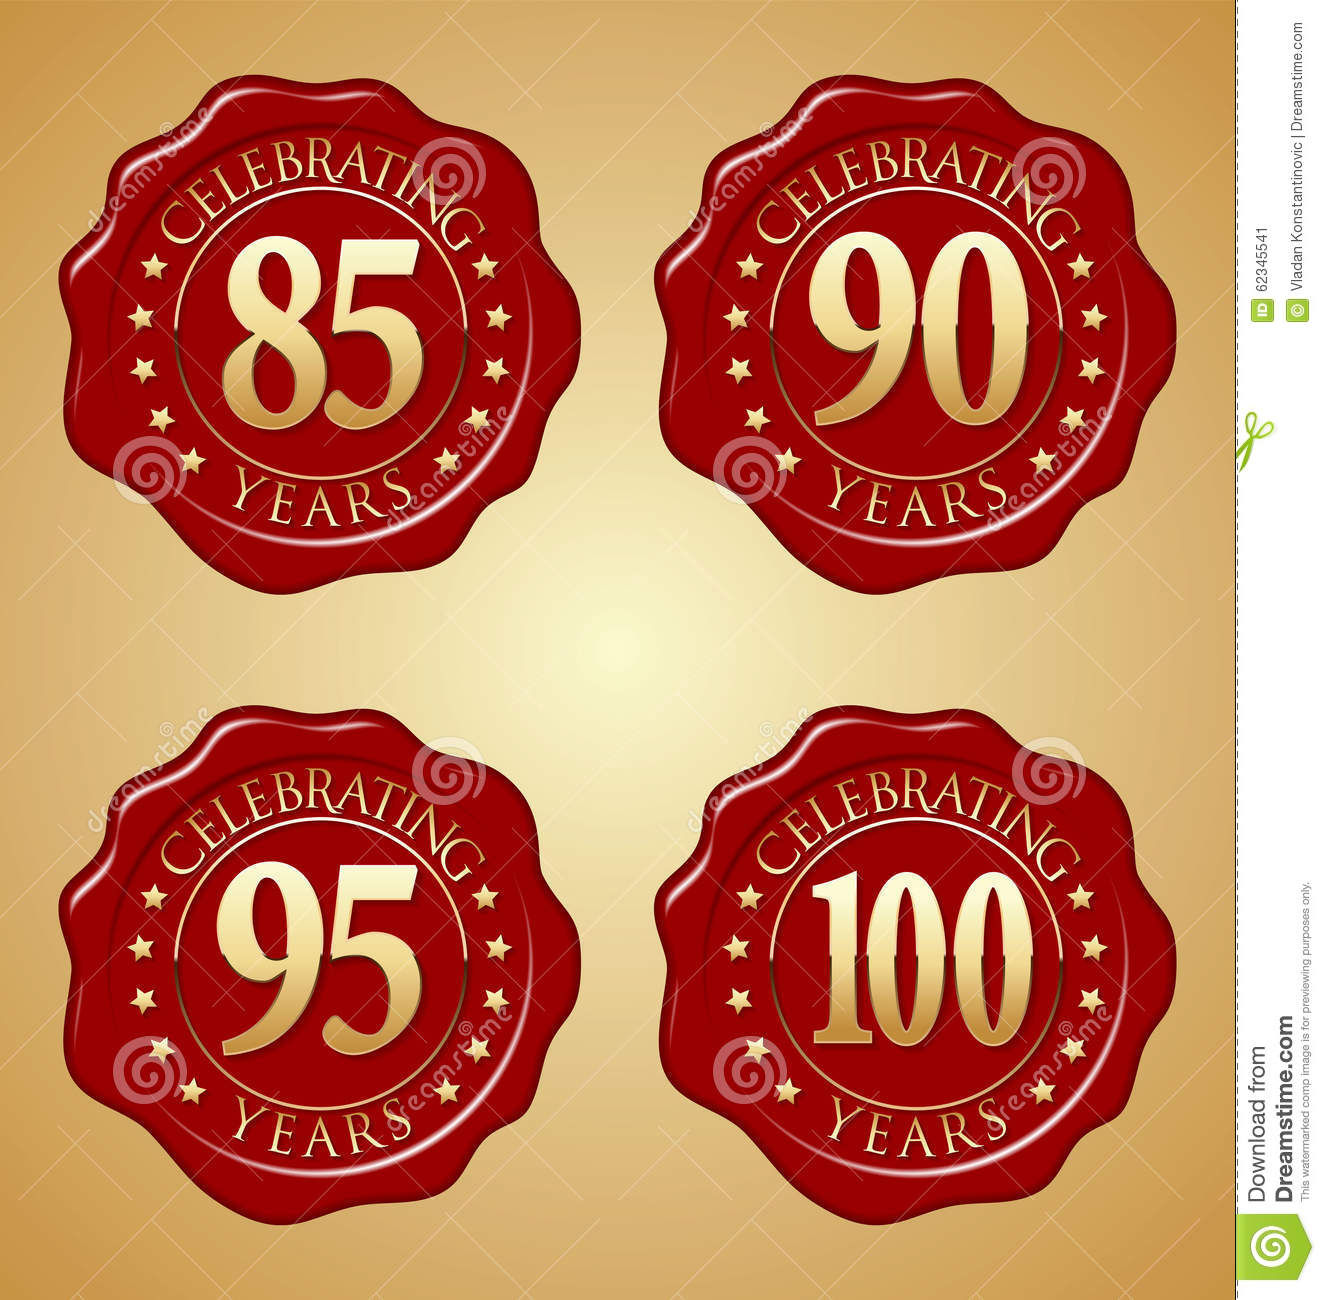 Vector Set Of Anniversary Red Wax Seal 85th, 90th, 95th ...